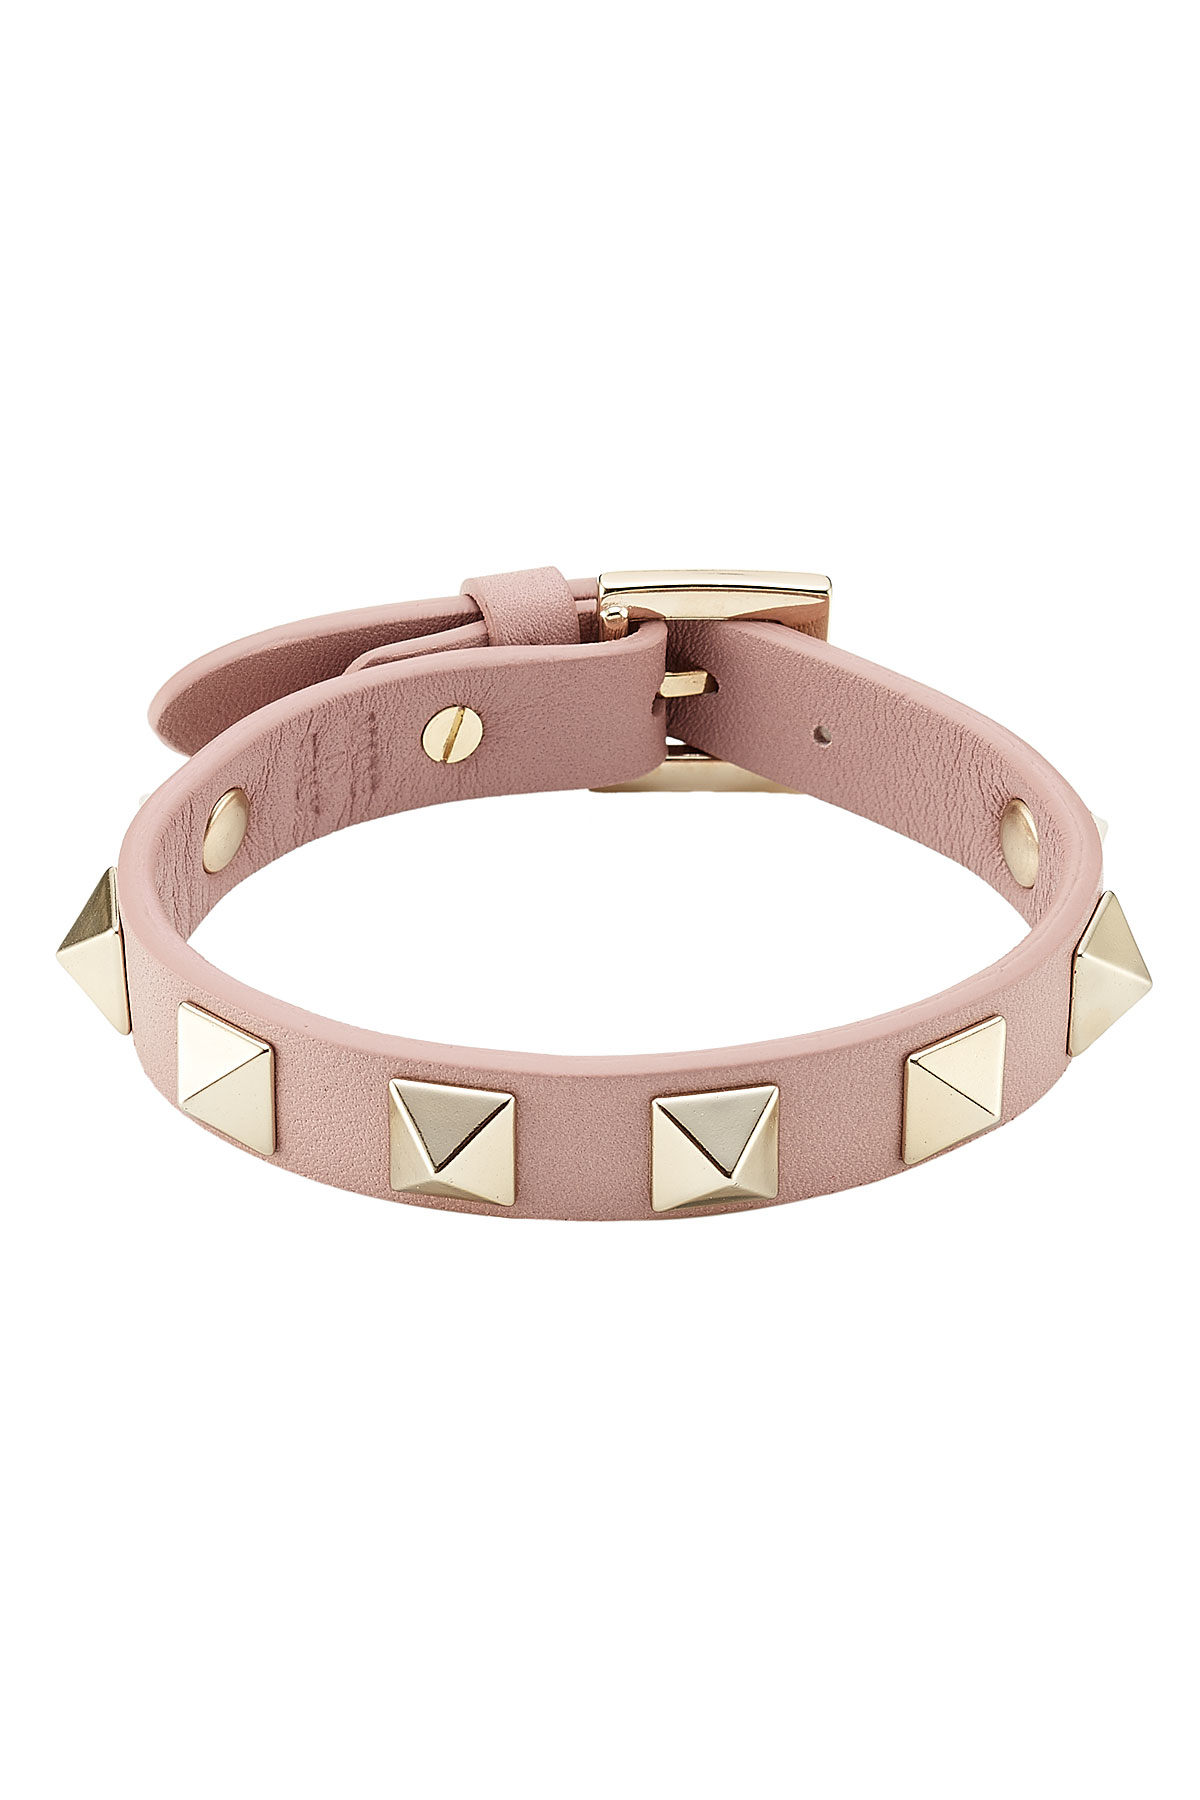 valentino small rockstud leather bracelet in pink